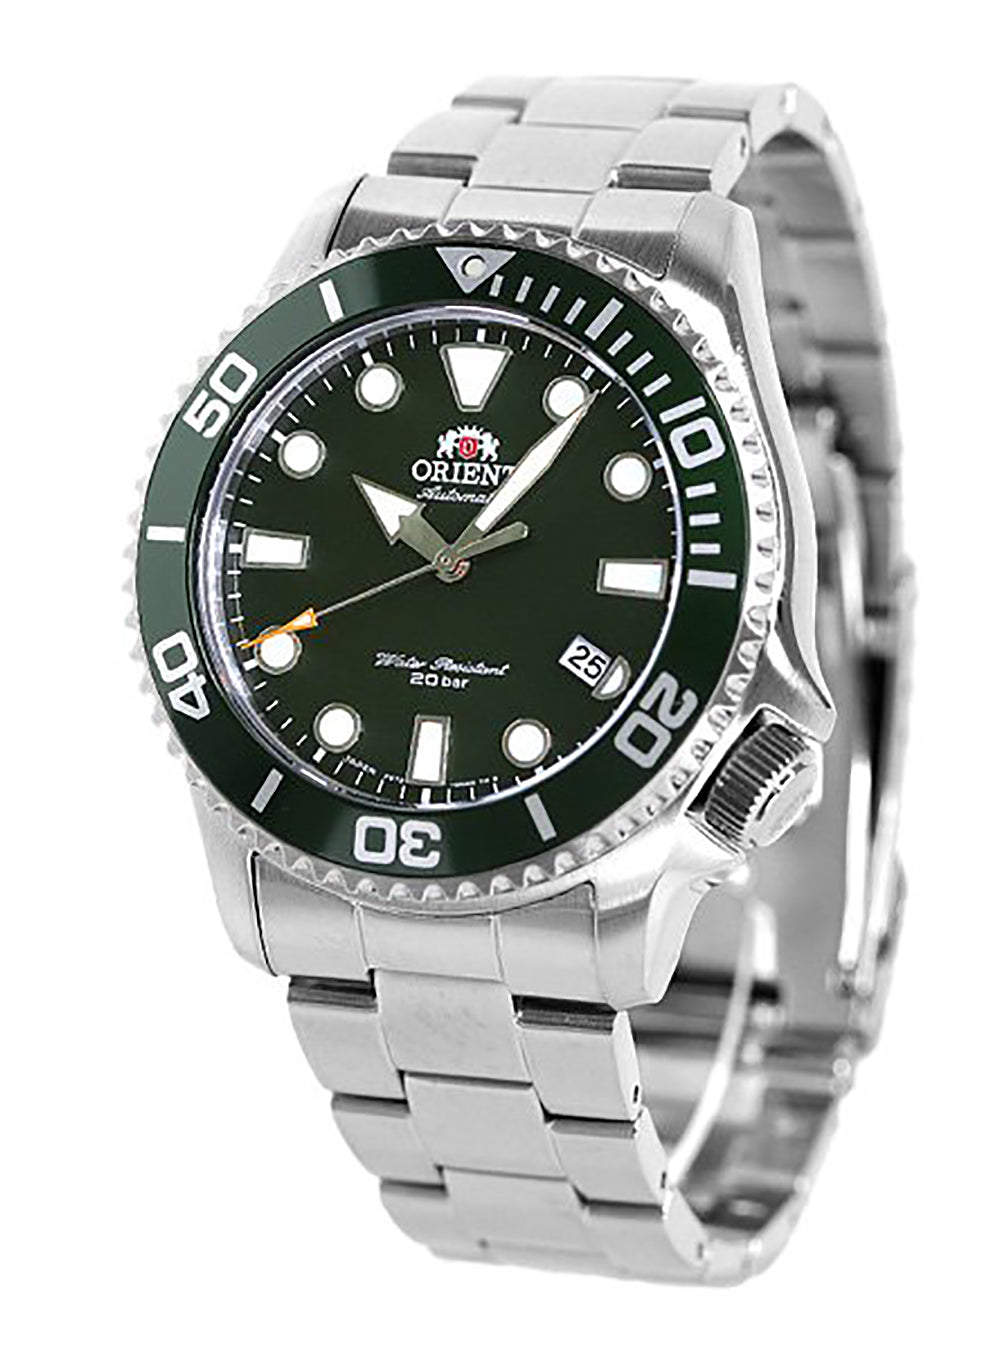 ORIENT SPORTS DIVER STYLE RN-AC0K02E MADE IN JAPAN JDM